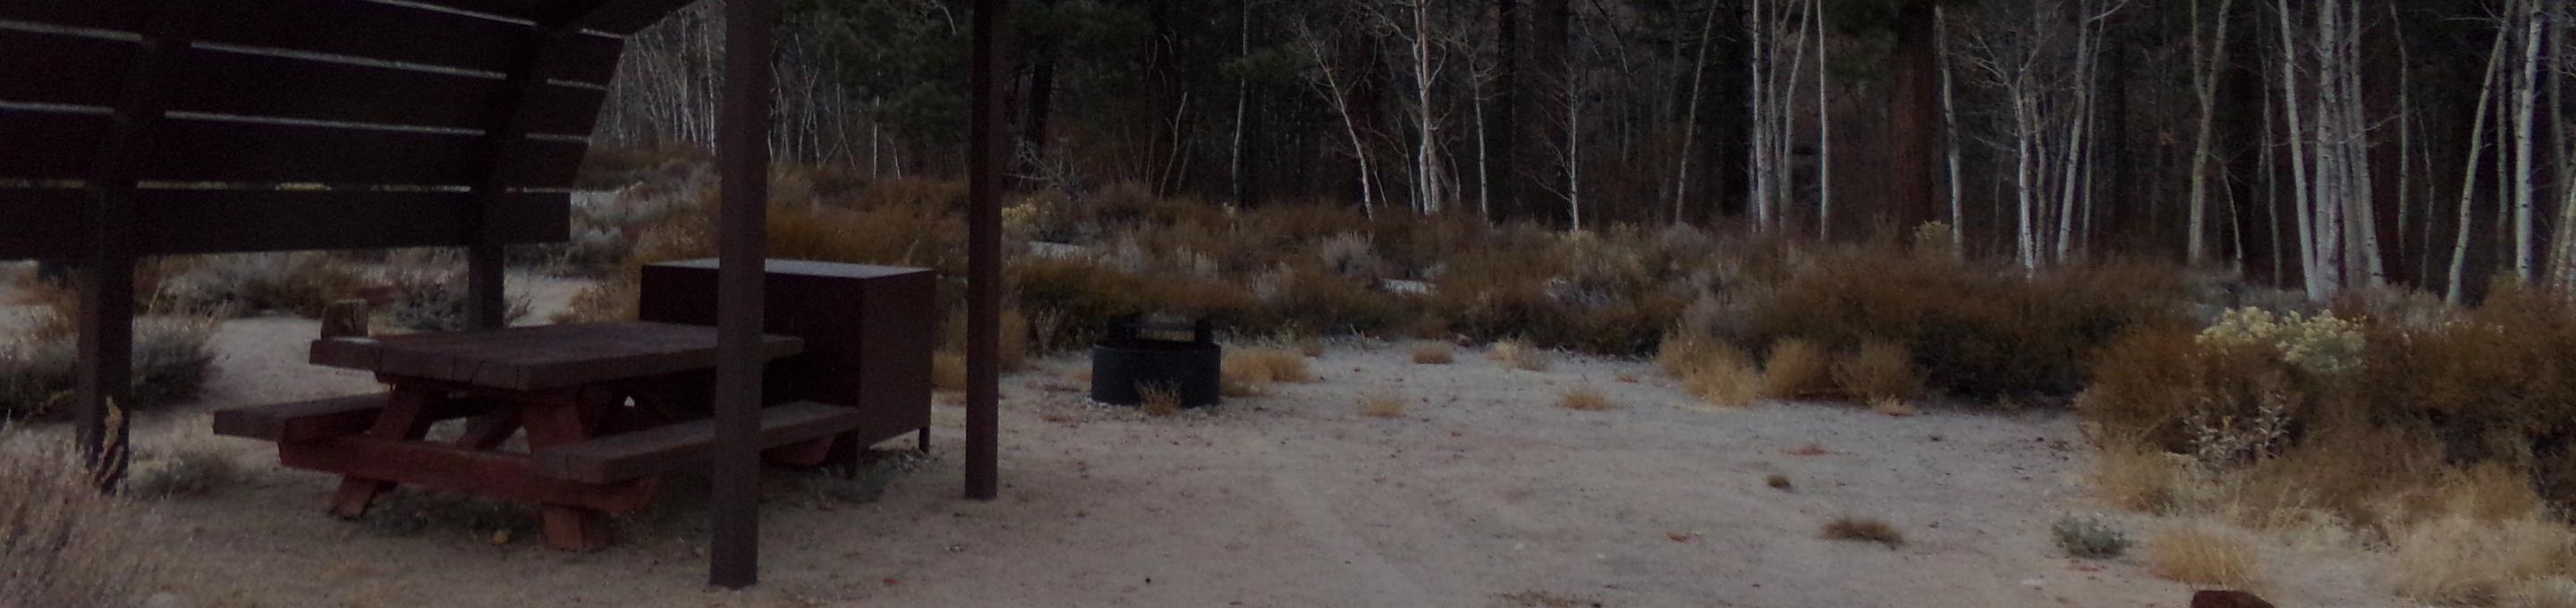 Tuff Campground site #03 featuring shaded picnic area, camping space, and fire pit.